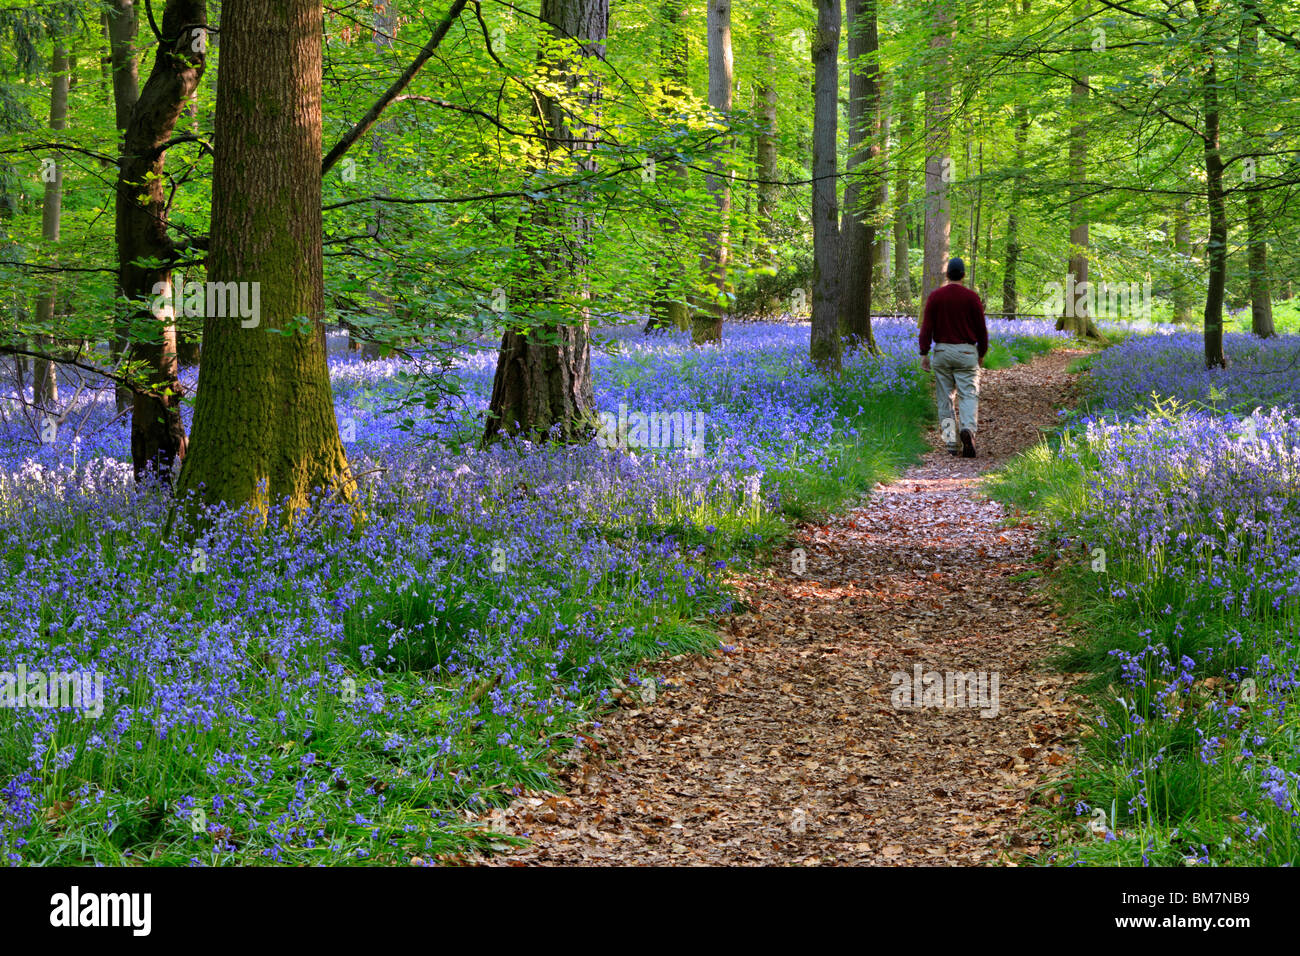 Surrounded by a carpet of English Bluebells on the trail between Soudley and Blakeney in the Forest of Dean, Gloucestershire, UK Stock Photo